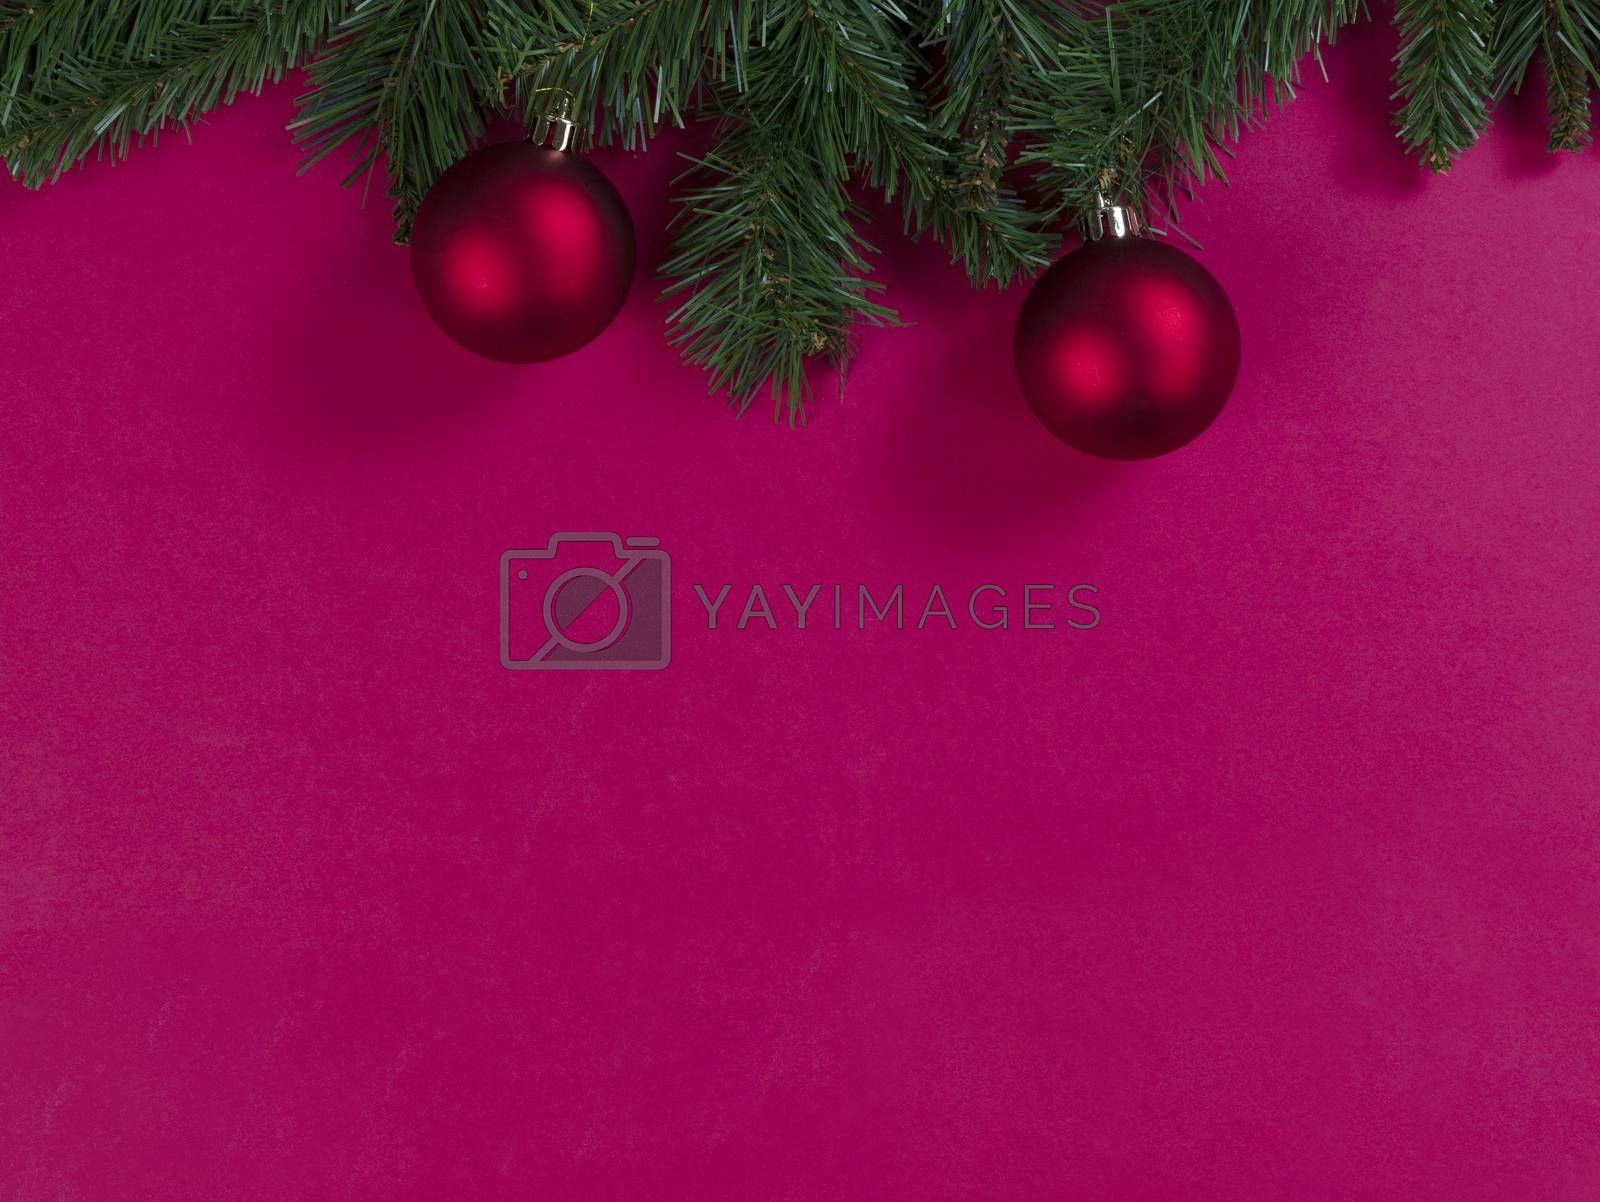 Merry Christmas and happy New Year on a red background with evergreen branches plus ball ornaments